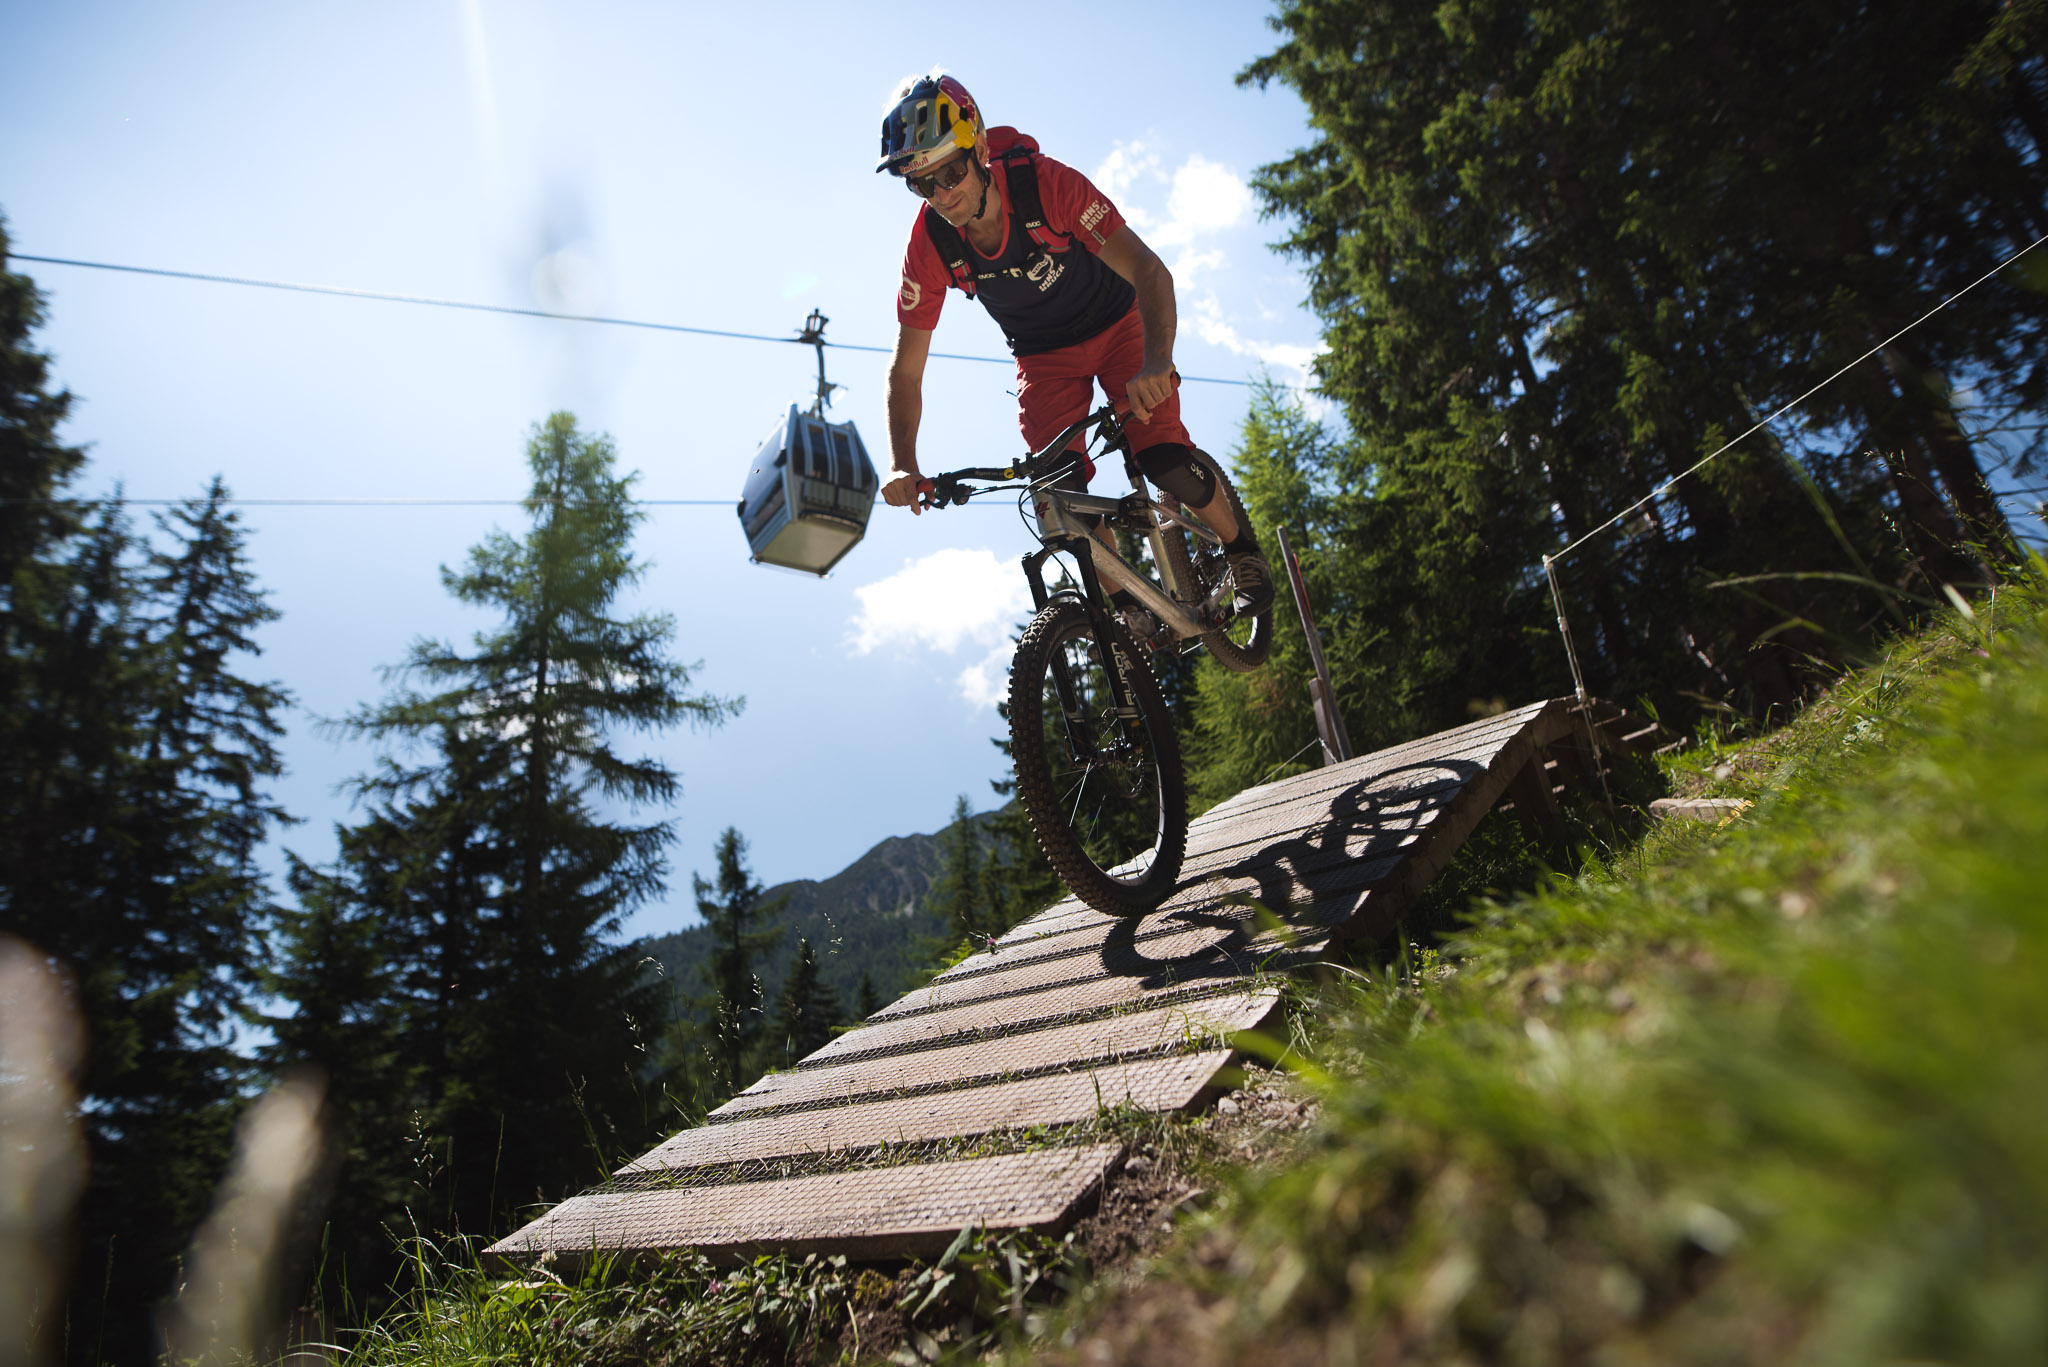 innsbruck_mountainbike lift